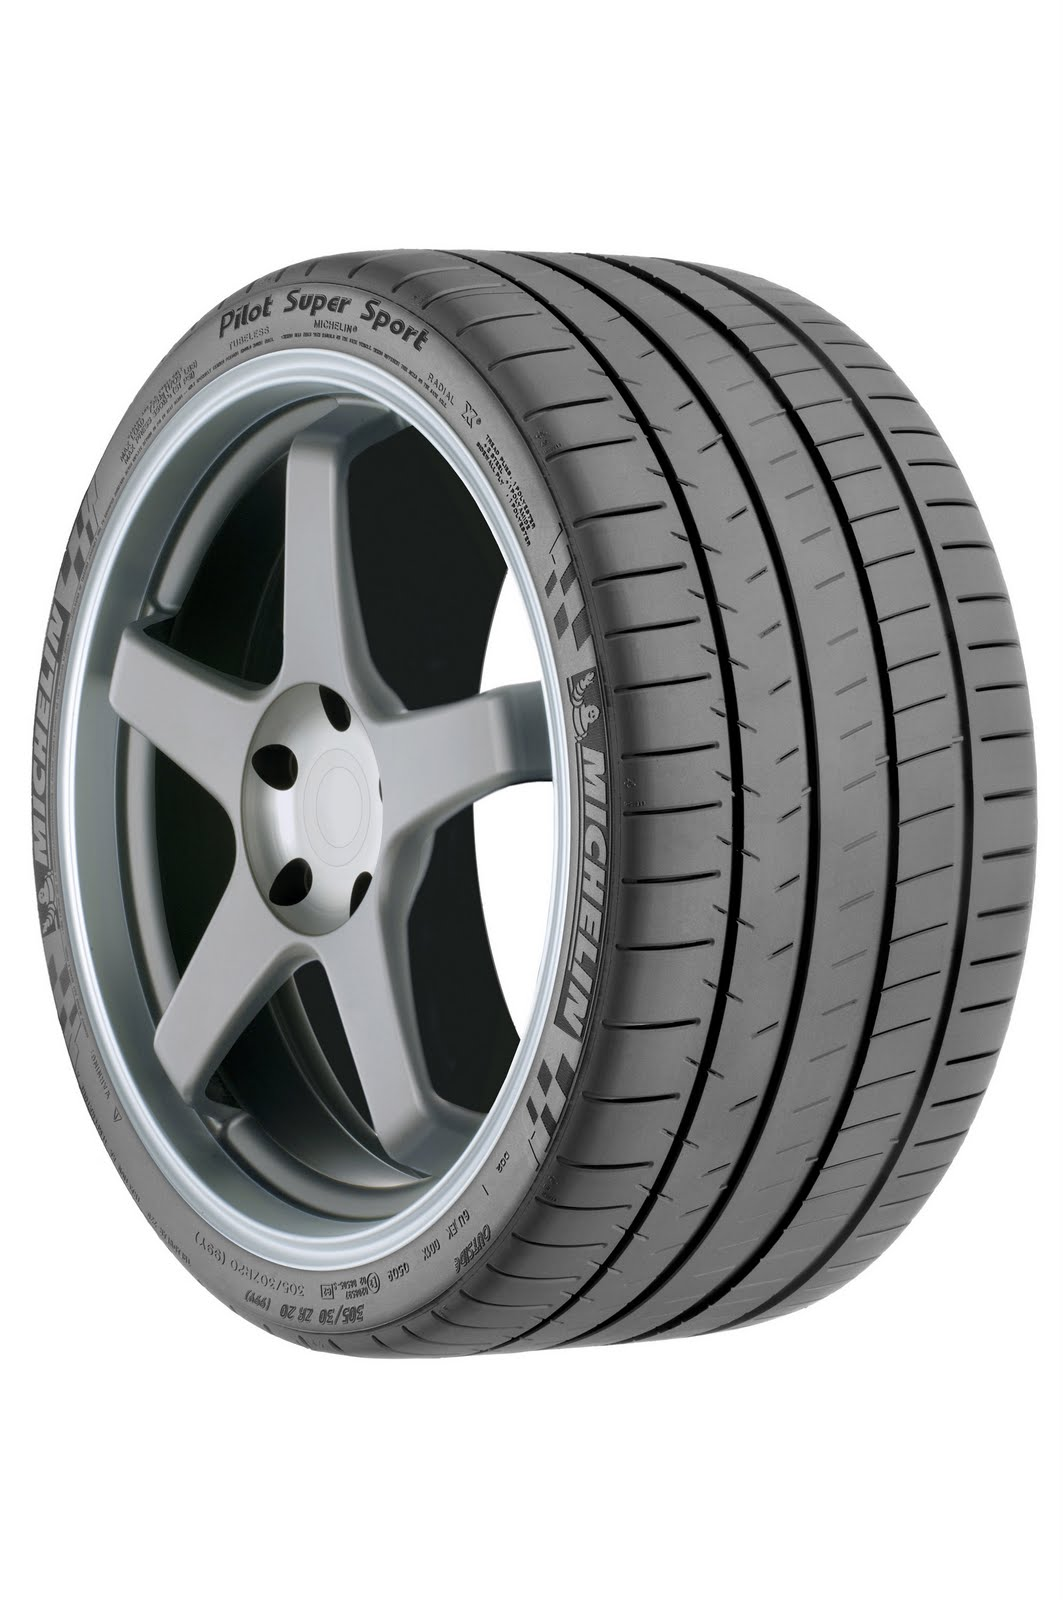 Pilot Super Sport Tread Wear,Review Michelin Pilot Super Sport,Pilot Supertel,Michelin Pilot Sport Tires